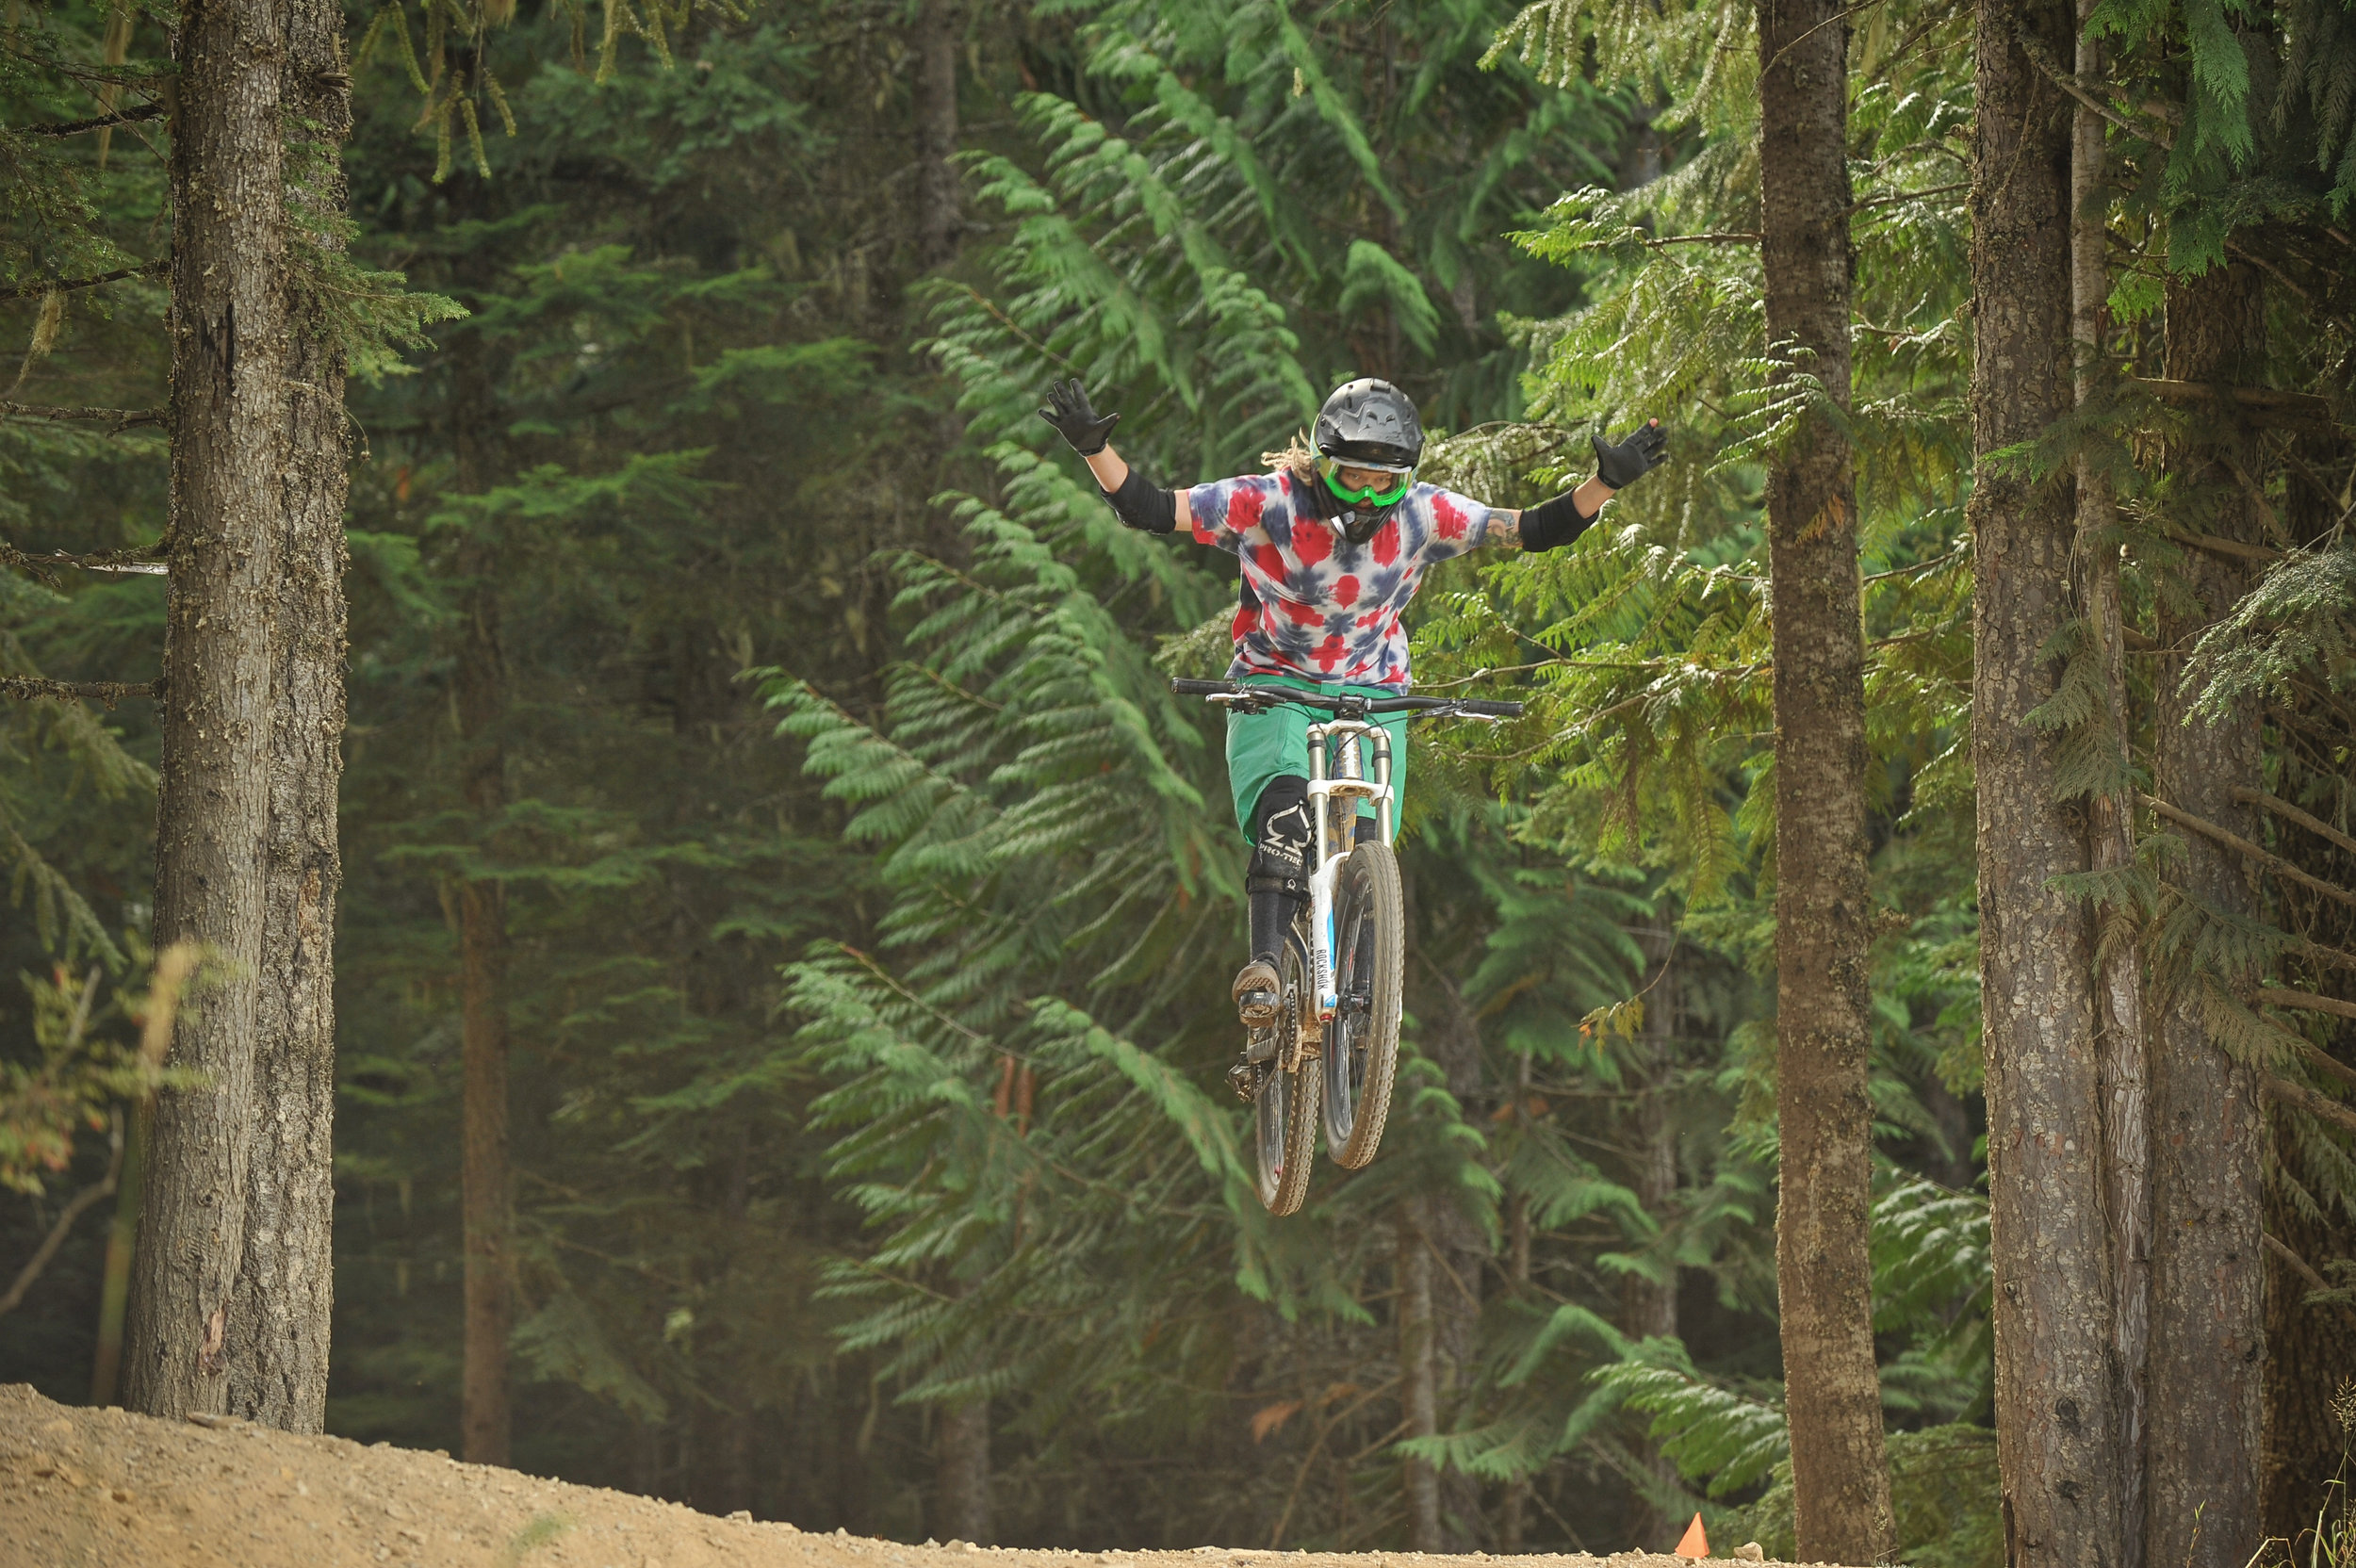 No-hander on A-line in the Whistler Bike Park. Photo credit: Coast Mountain Photography